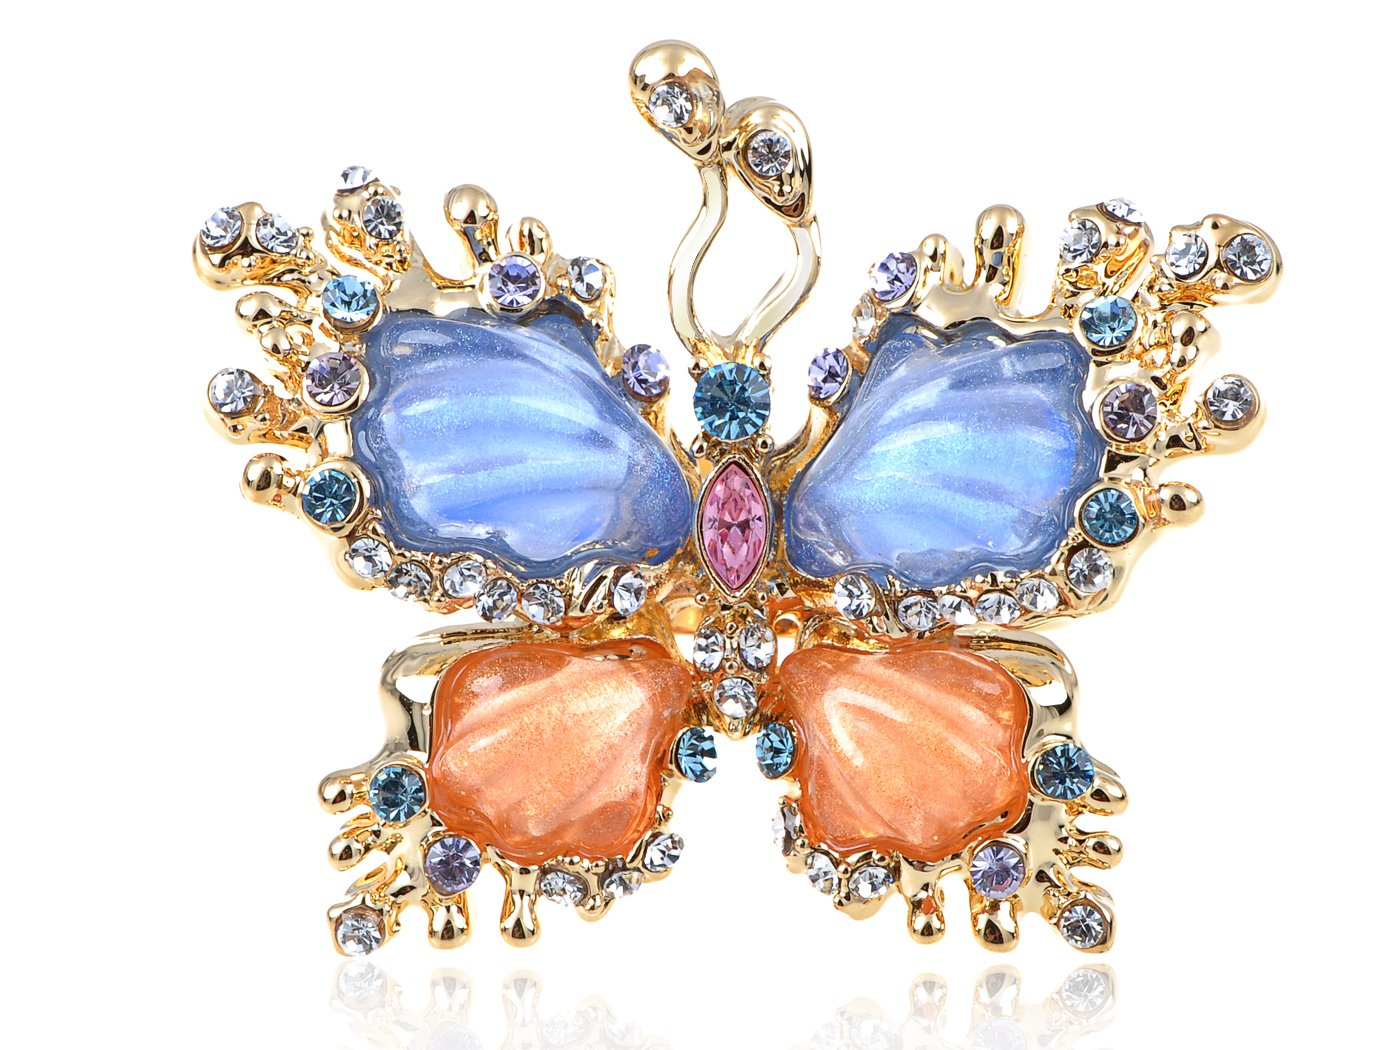 Alilang Womens Adjustable Golden Tone Multicolored Rhinestones Pearlescent Butterfly Ring